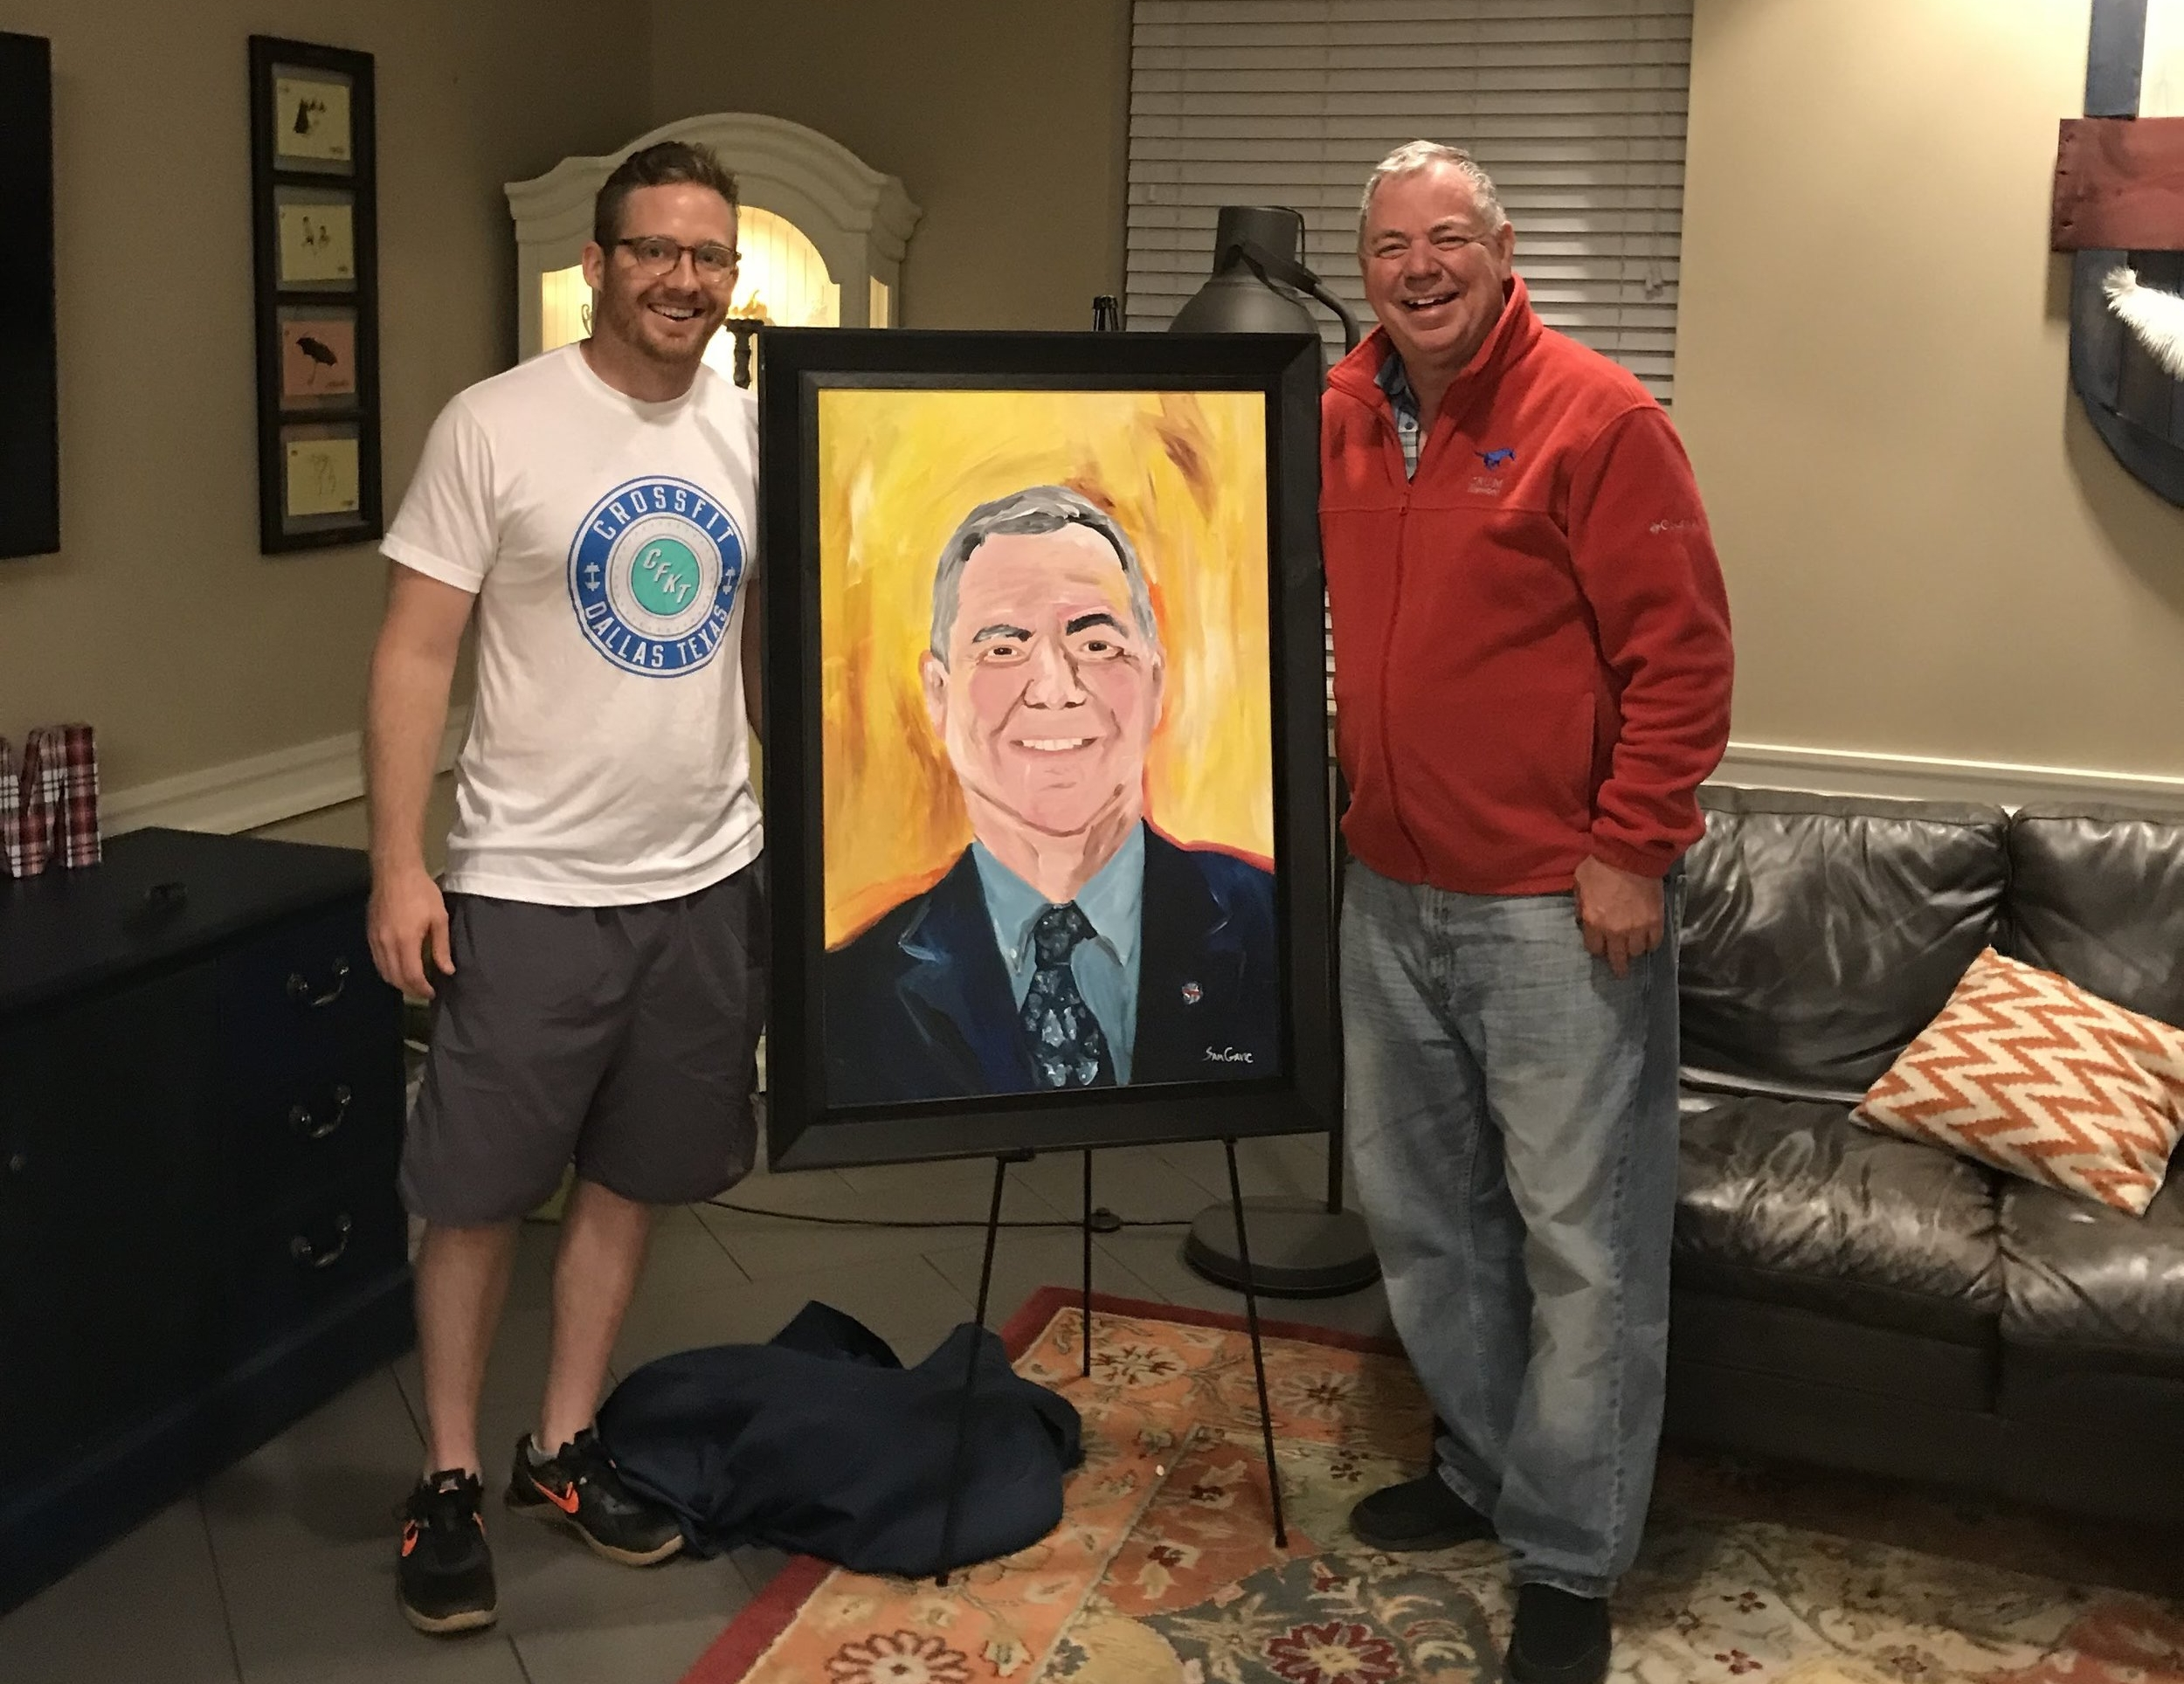 Dean Camp with artist and first RCD of Crum Commons, Sam Gavic. A Crum Tradition to have the portrait of each Faculty in Residence.